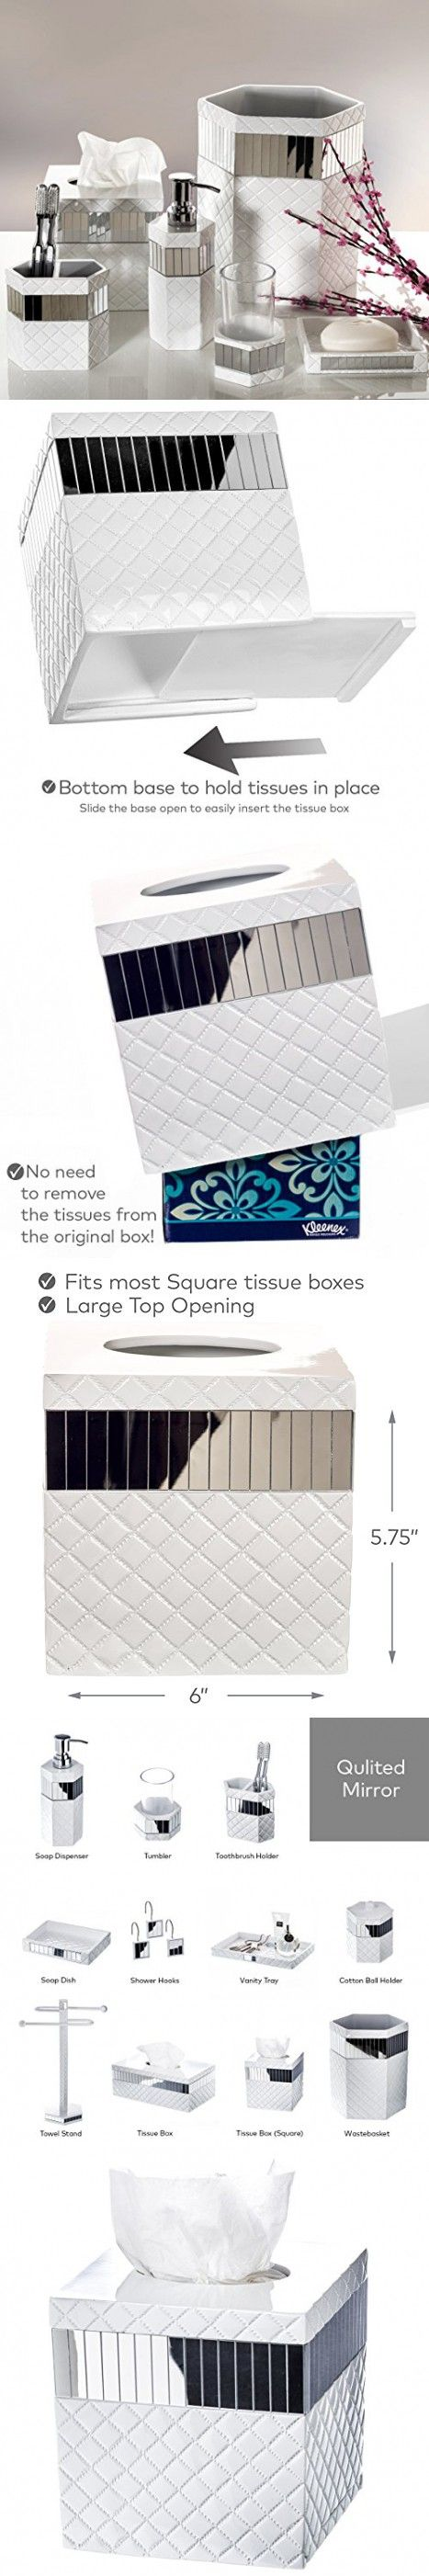 "Quilted Mirror Tissue Box Cover Square (6"" x 6"" x 5.75"") - Decorative Bath Tissues Paper Napkin Holder- Modern Serviette Napkins Container- Bottom Slider- For Cute Elegant Bathroom Décor"